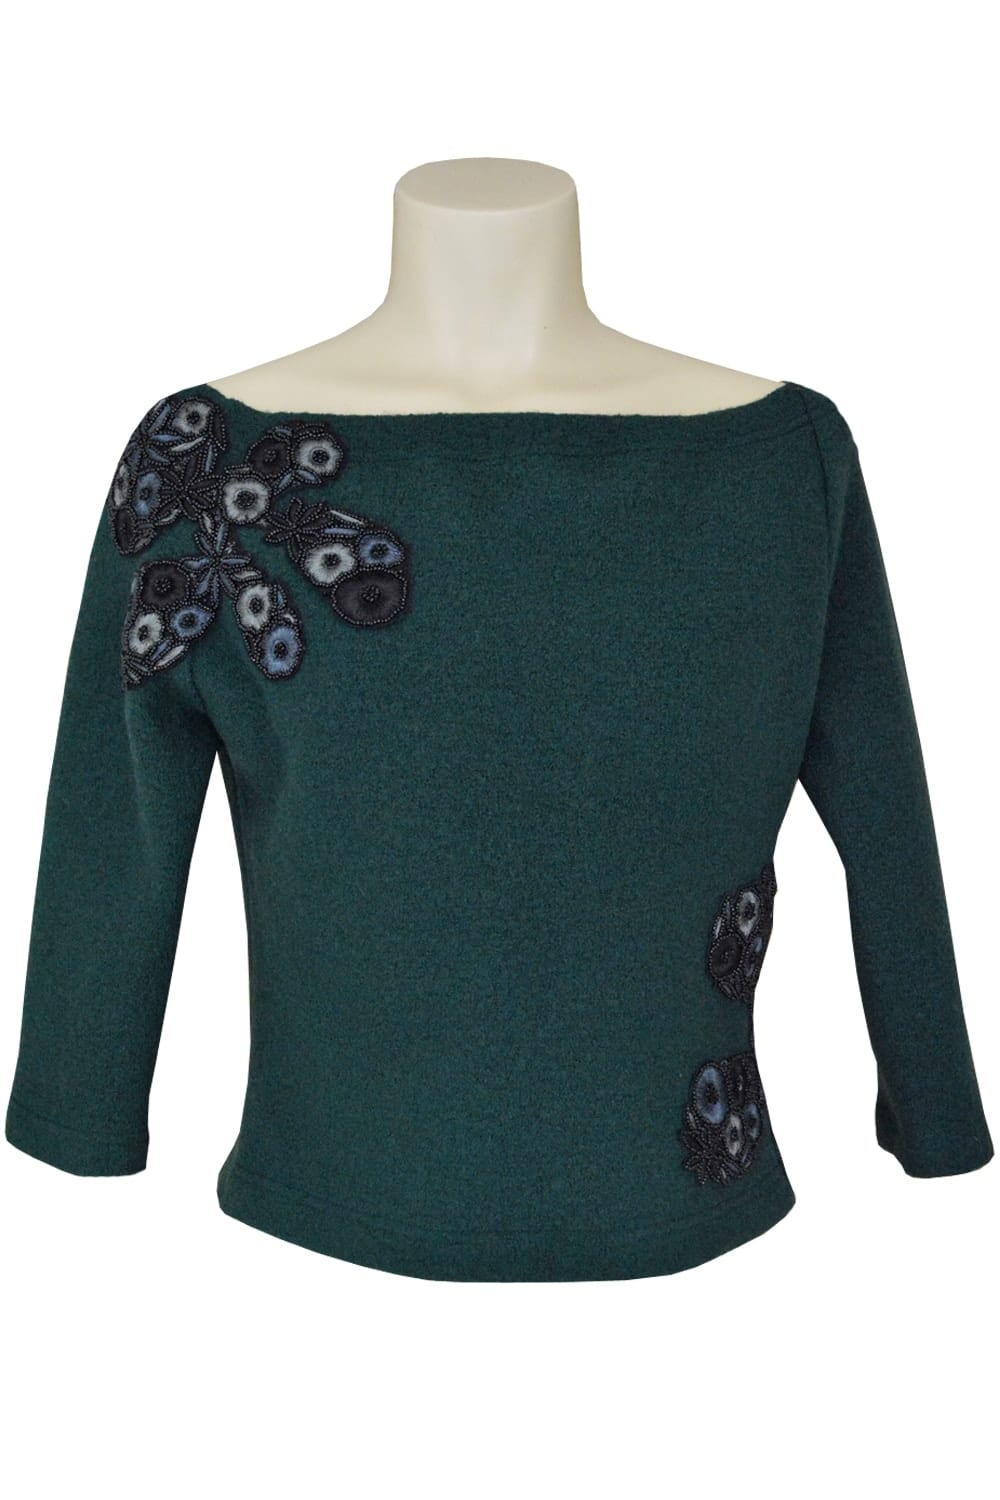 Boiled wool sweater neckline on the shoulders embellished with 4 patterns of hand embroidered black embroidery.